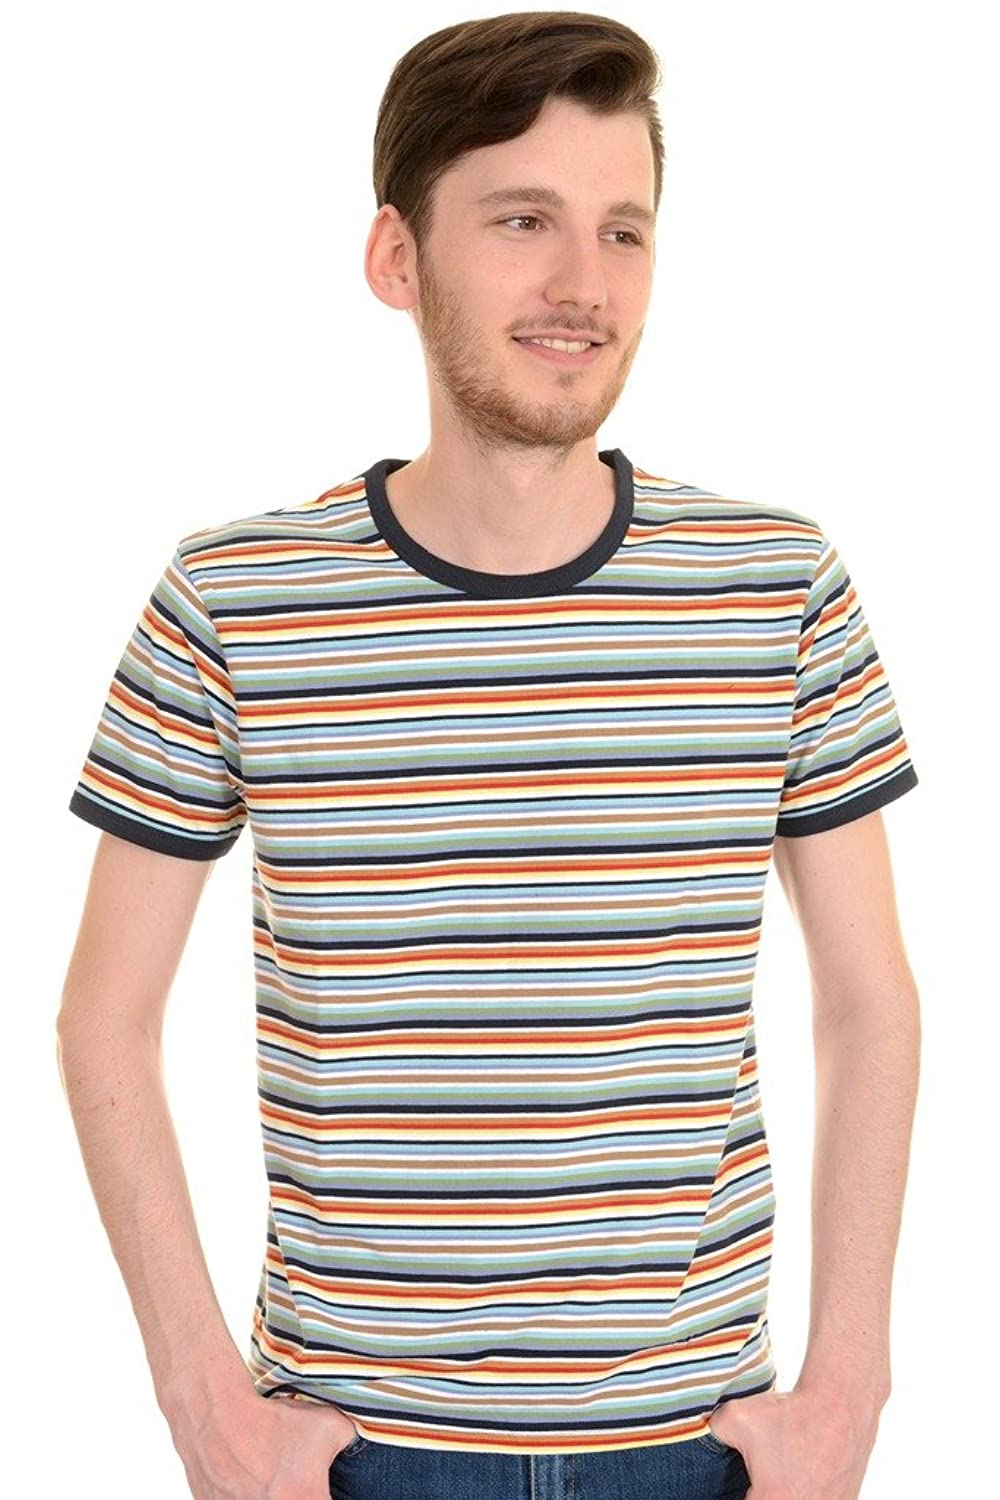 1960s Style Men's Clothing, 70s Men's Fashion Mens Run & Fly 60s 70s Retro Multi Striped Ringer T Shirt $22.95 AT vintagedancer.com